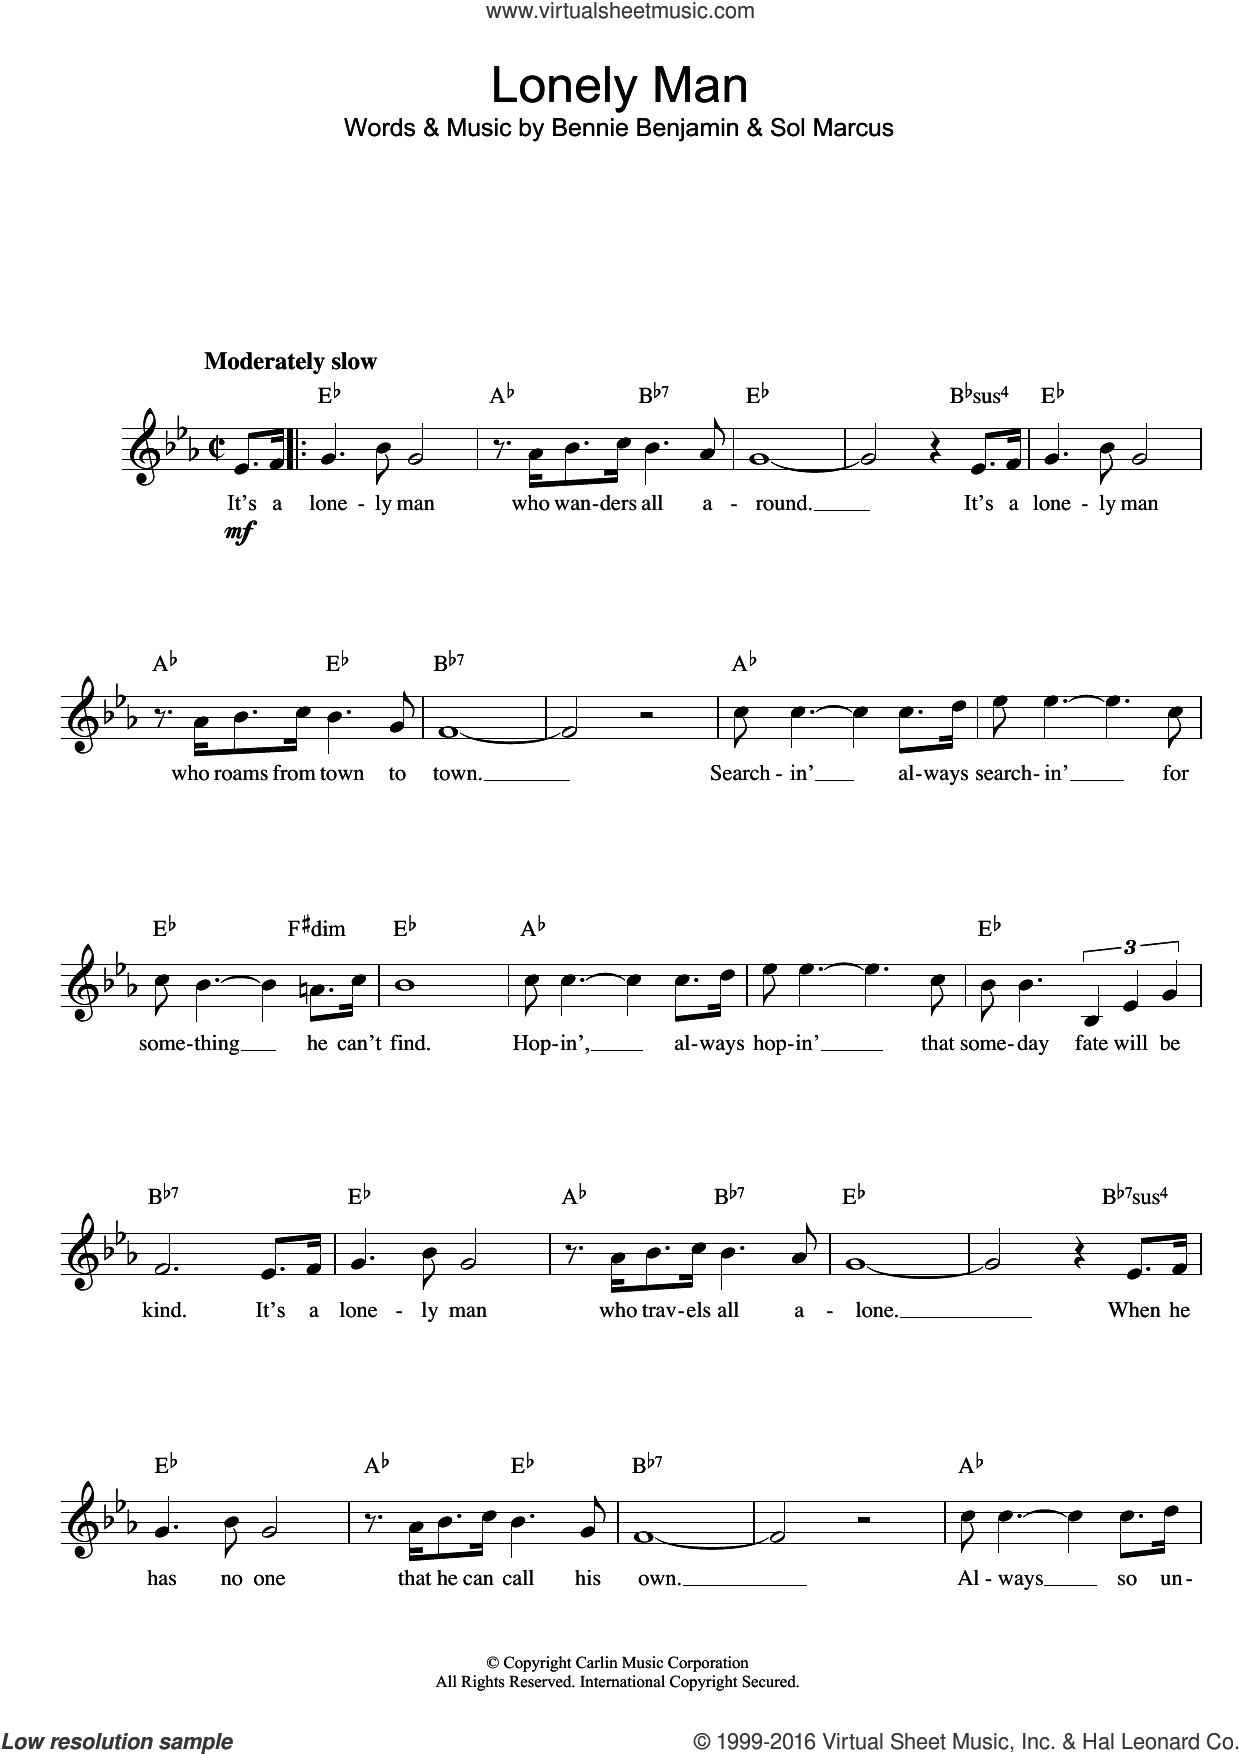 Lonely Man sheet music for voice and other instruments (fake book) by Bennie Benjamin and Sol Marcus, intermediate skill level